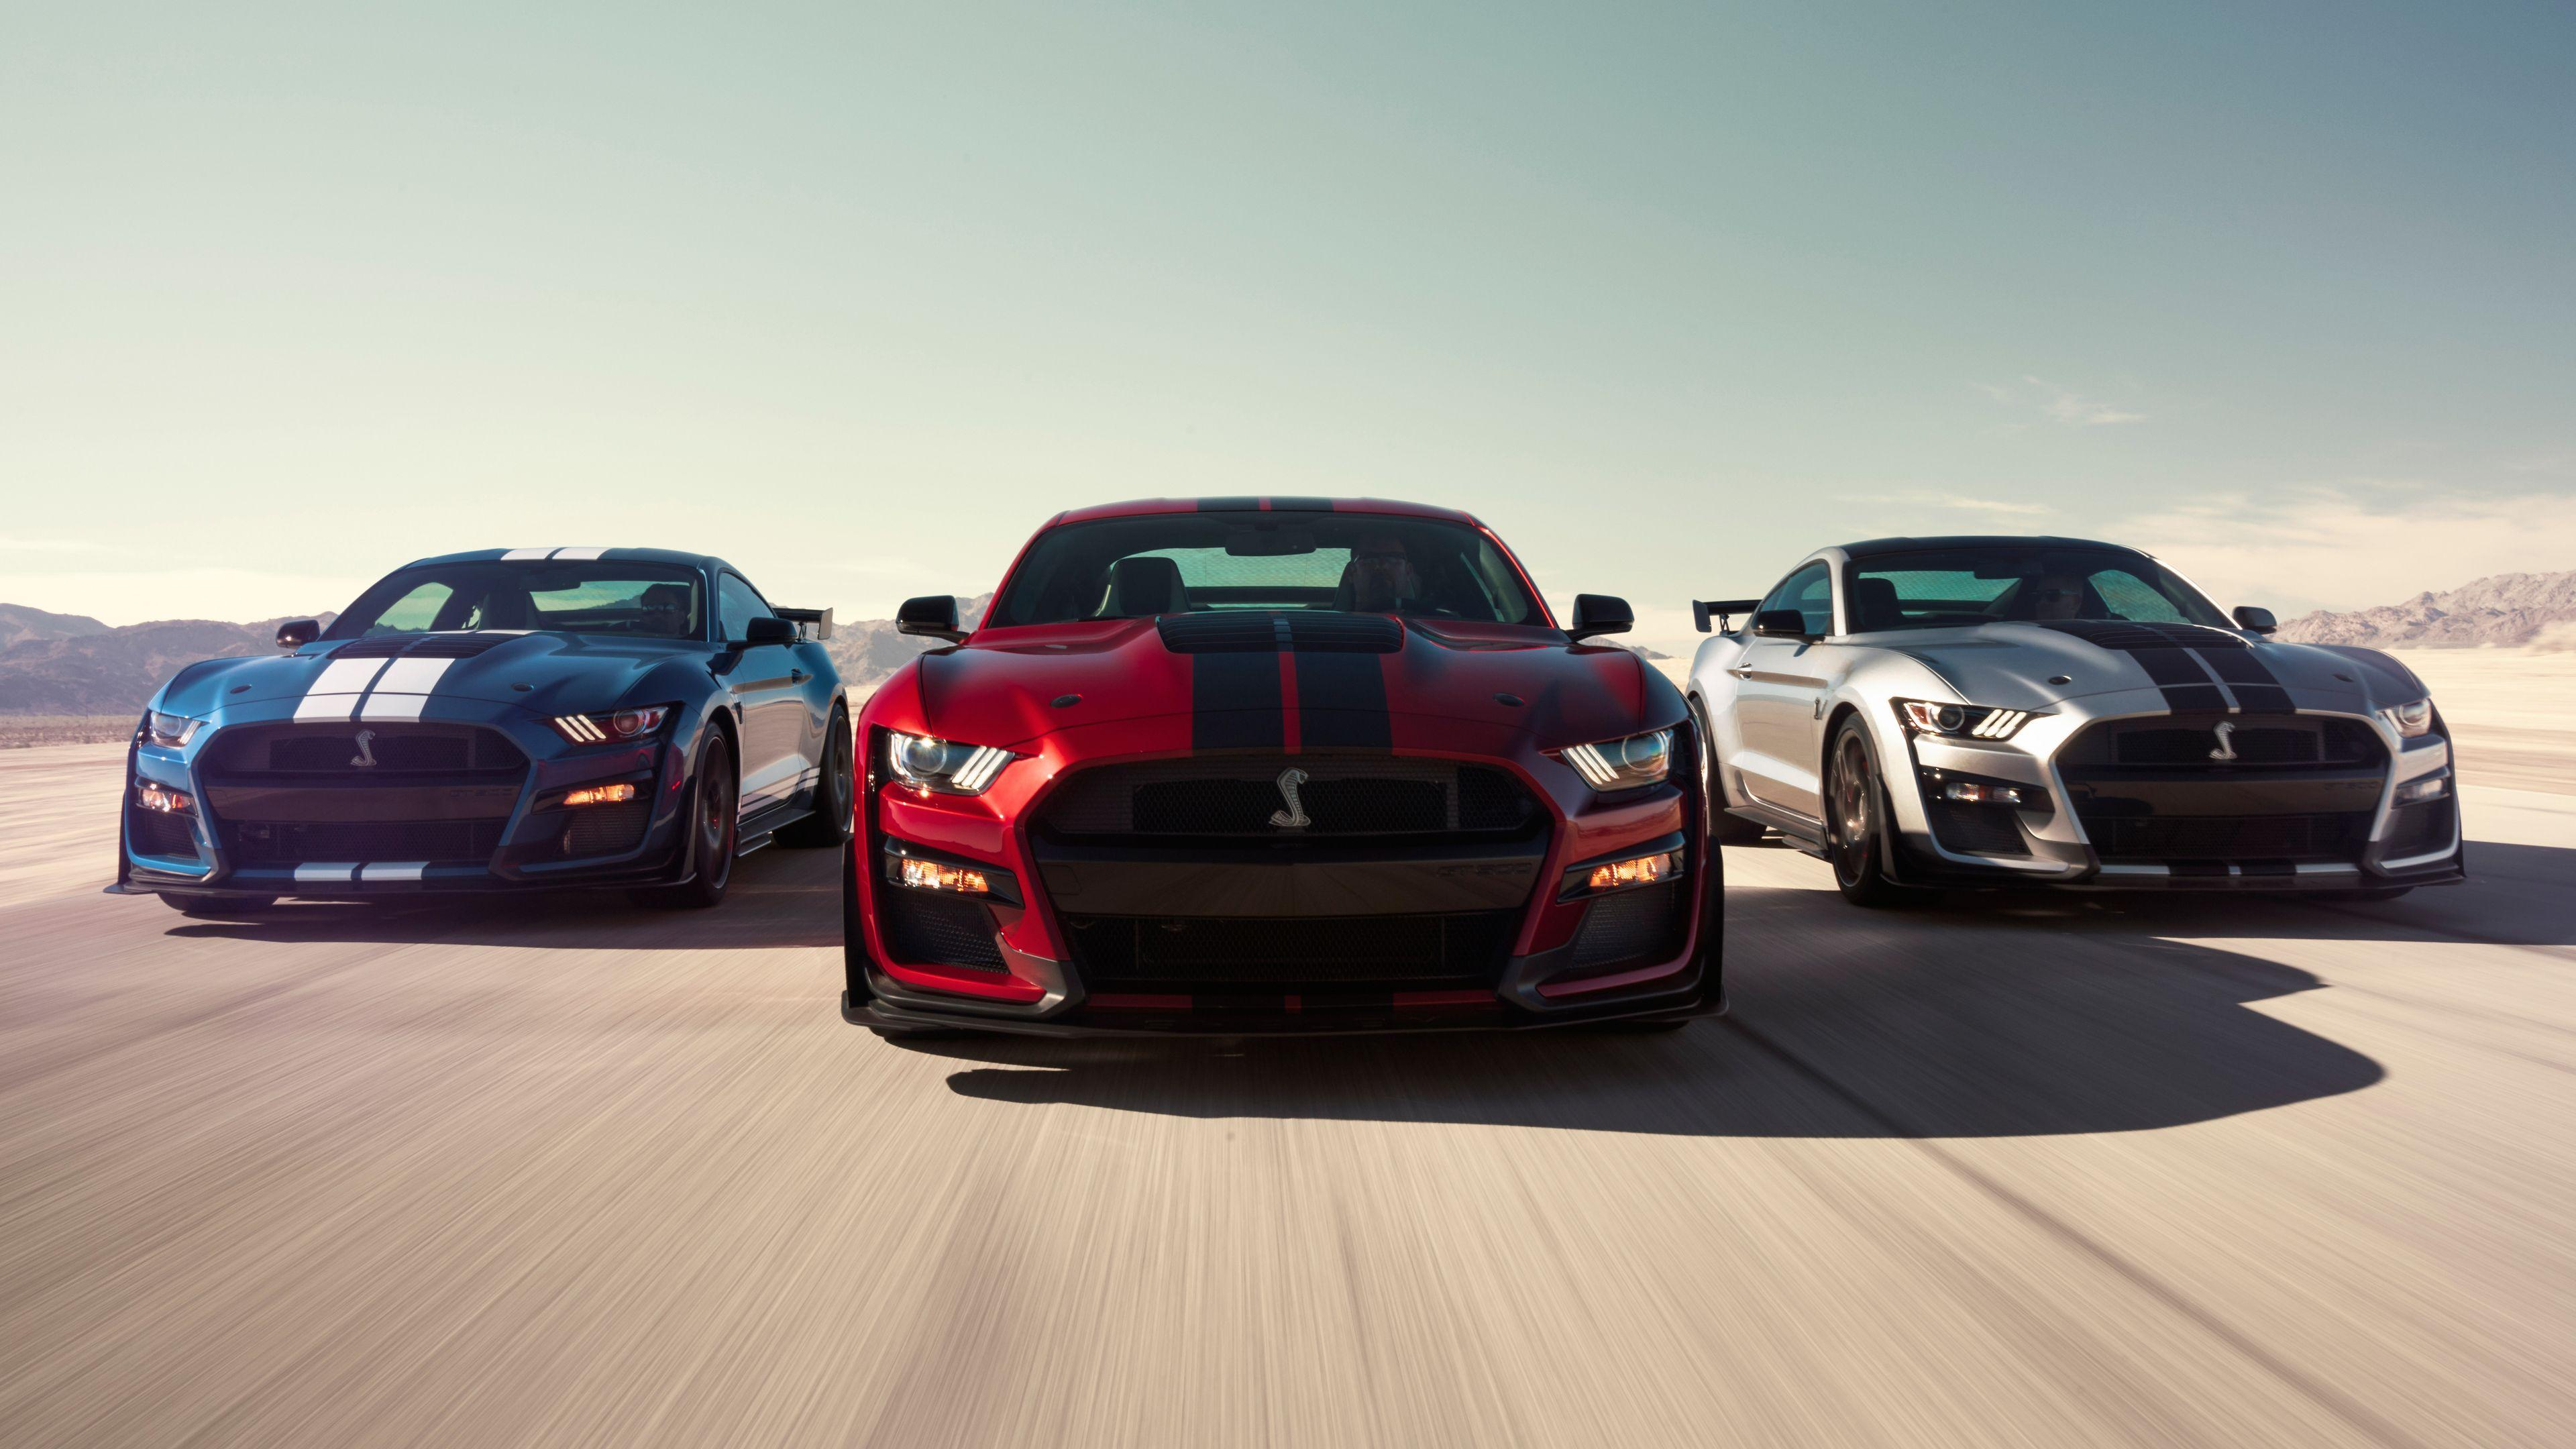 Ford Mustang 2020 Wallpapers 3840x2160